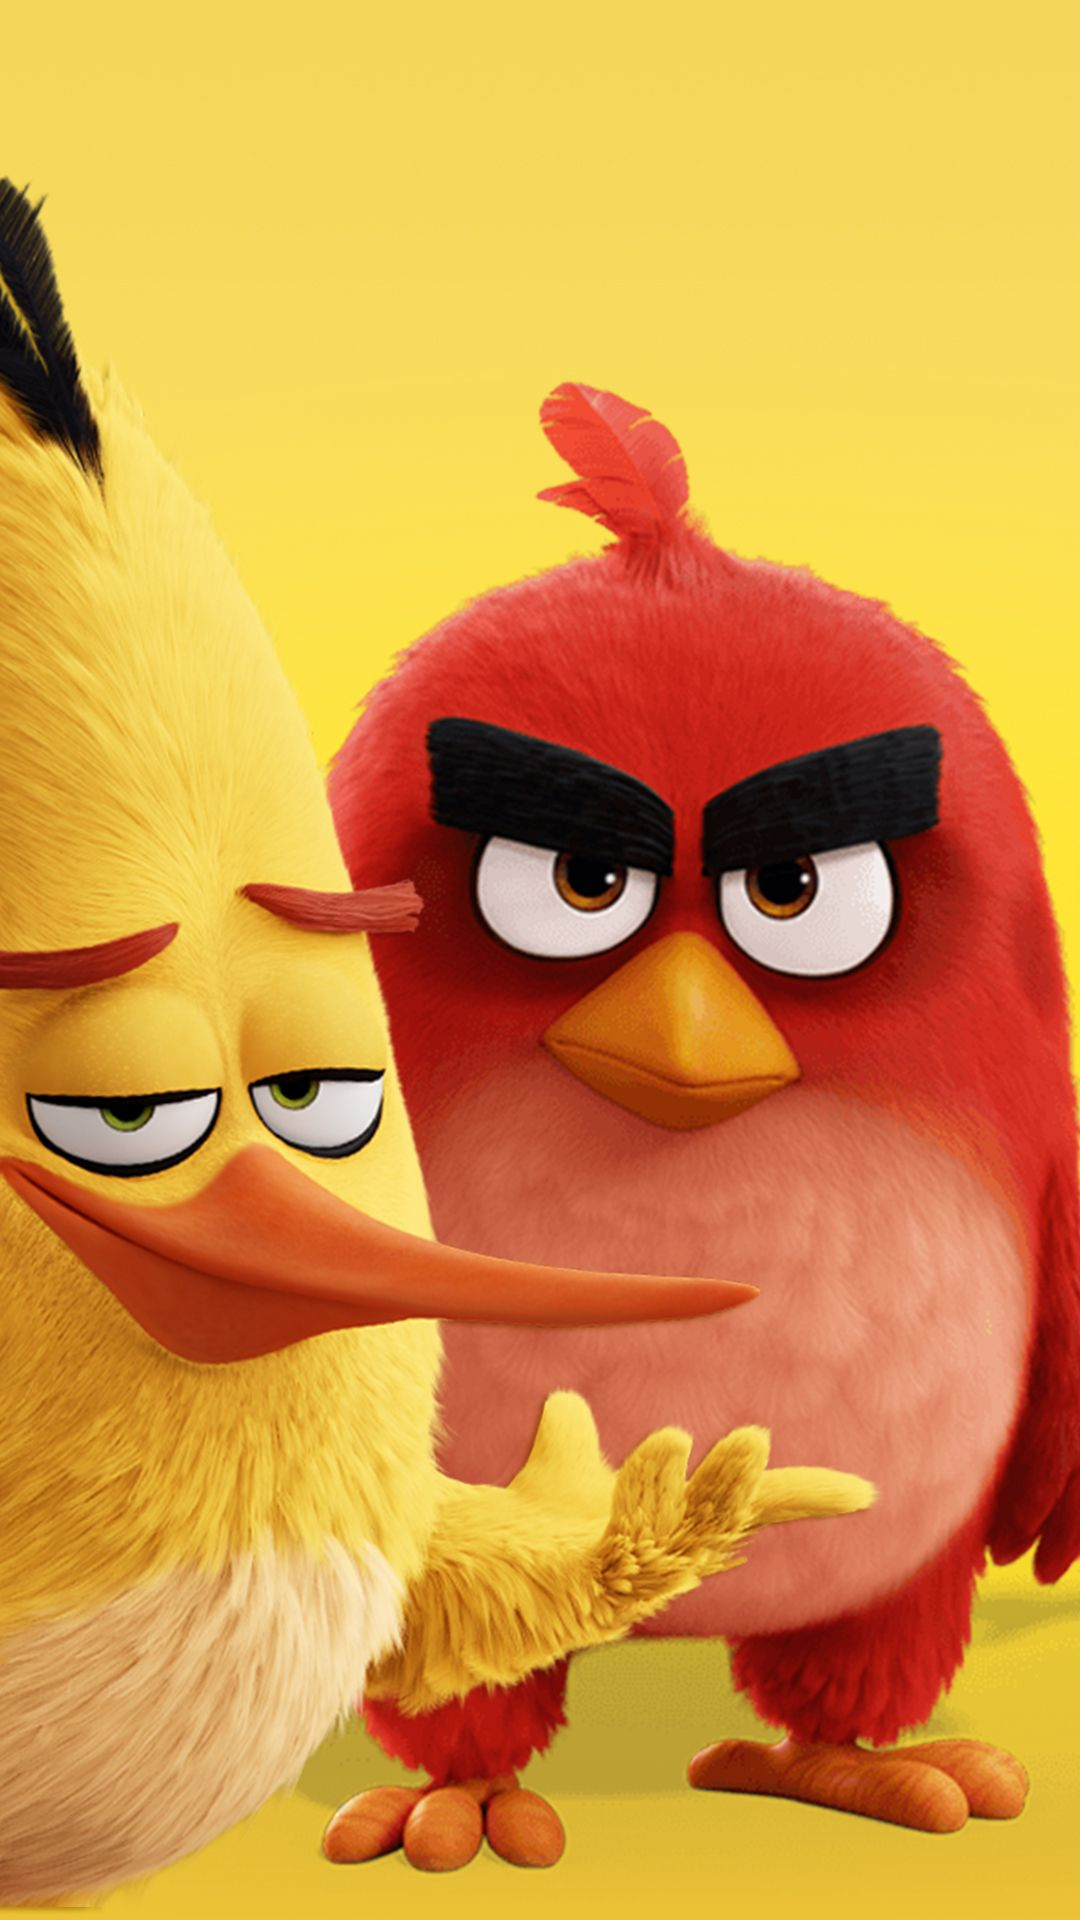 Angry Birds Hd Wallpaper For Your Mobile Phone Cartoon Wallpaper Angry Birds Characters Bird Wallpaper